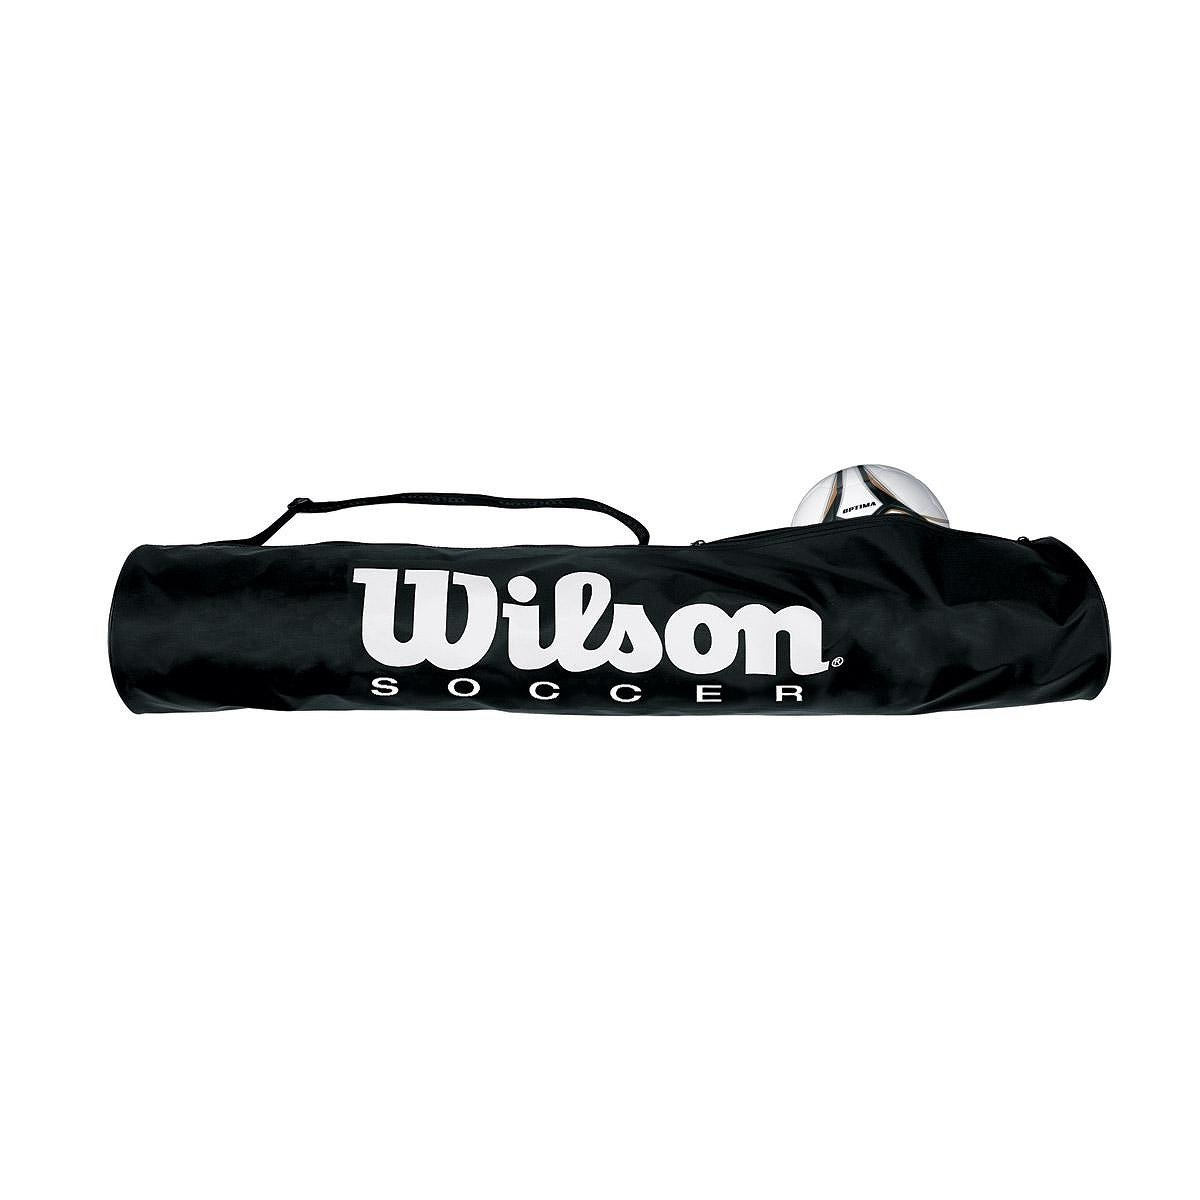 Wilson Sporting Goods Soccer Tube Bag by Wilson (Image #1)